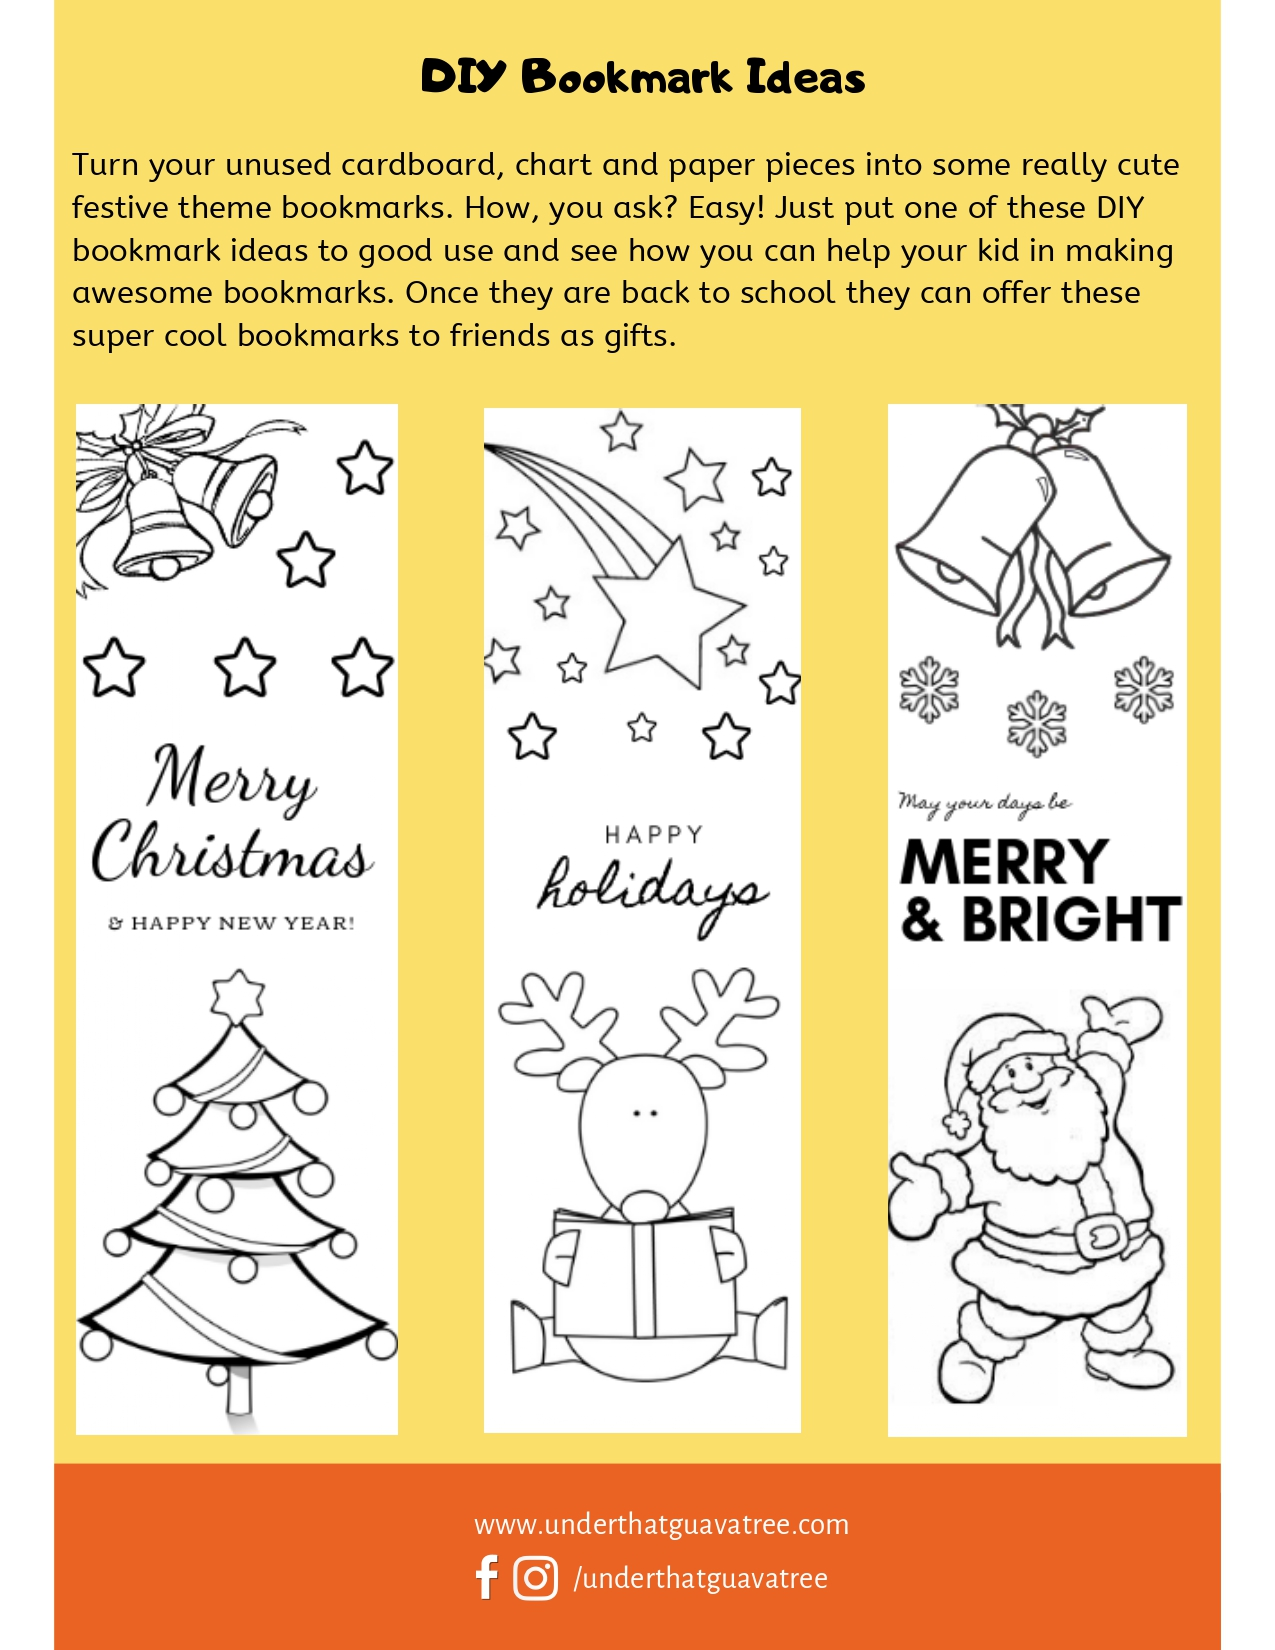 Holiday Theme – Kiddingly Magazine - KiddinglyByUTGT Dec2018 page 0010 1